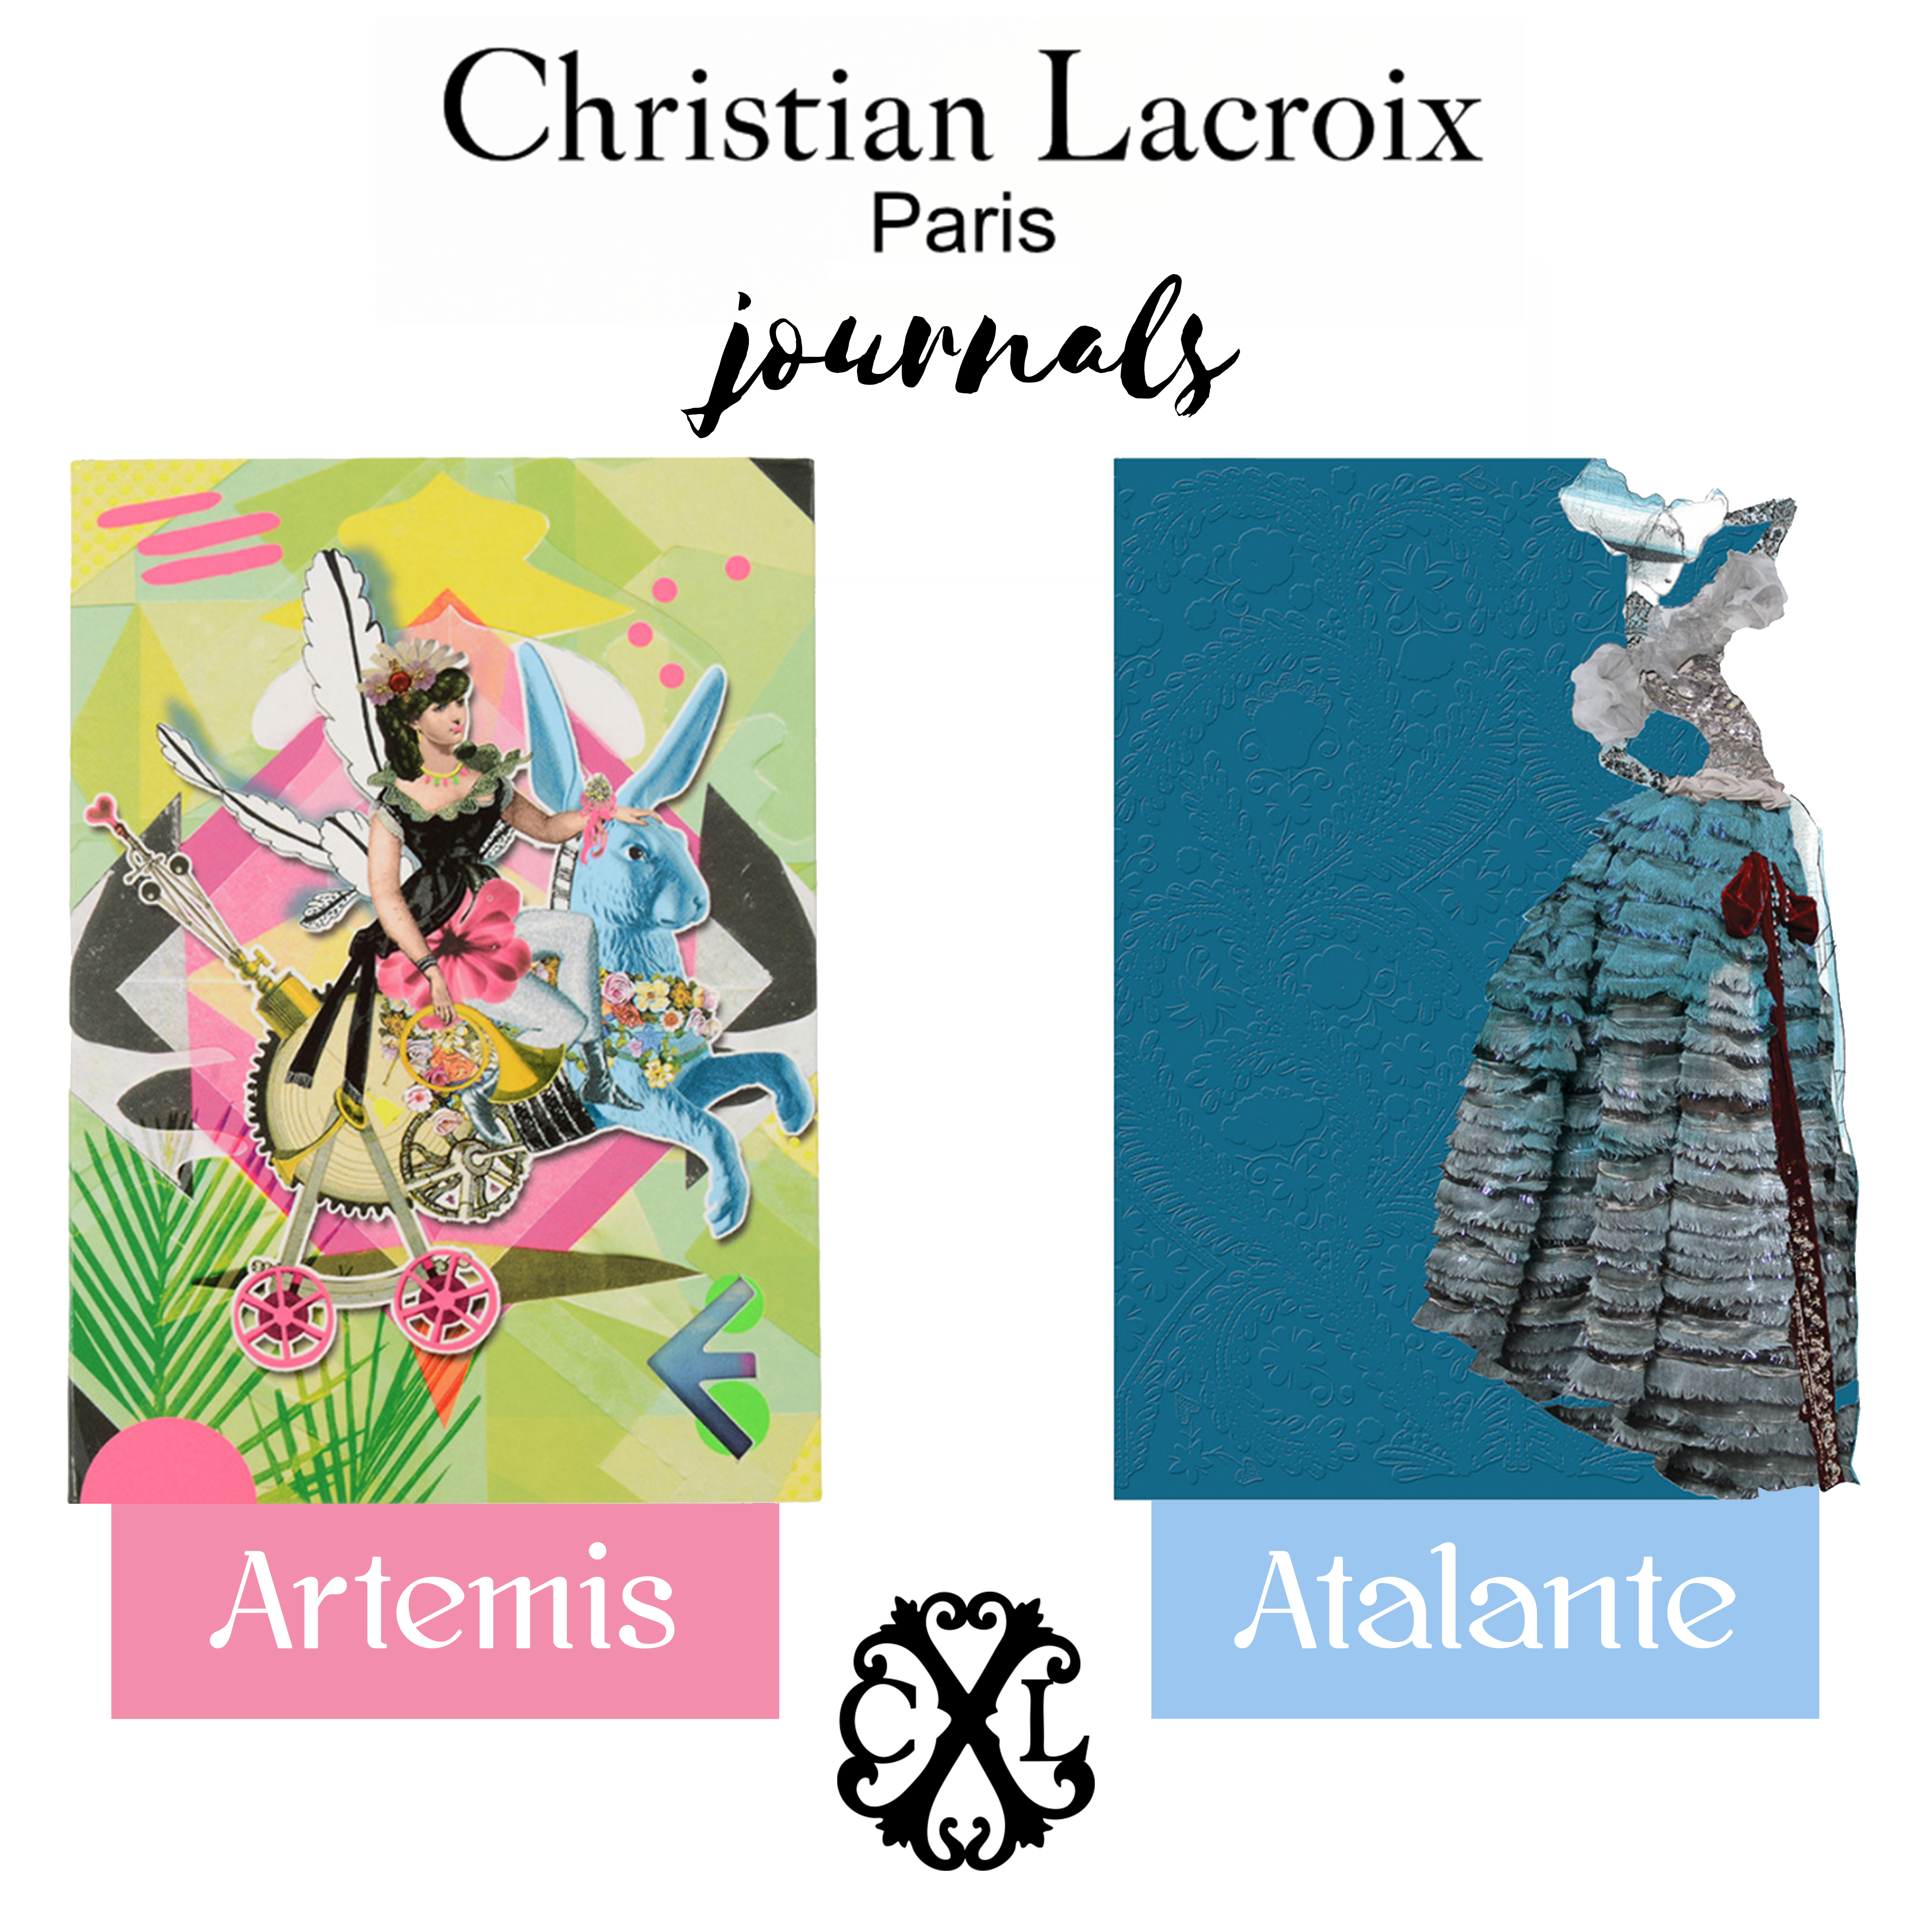 Lacroix Journals Sam Flax Atlanta